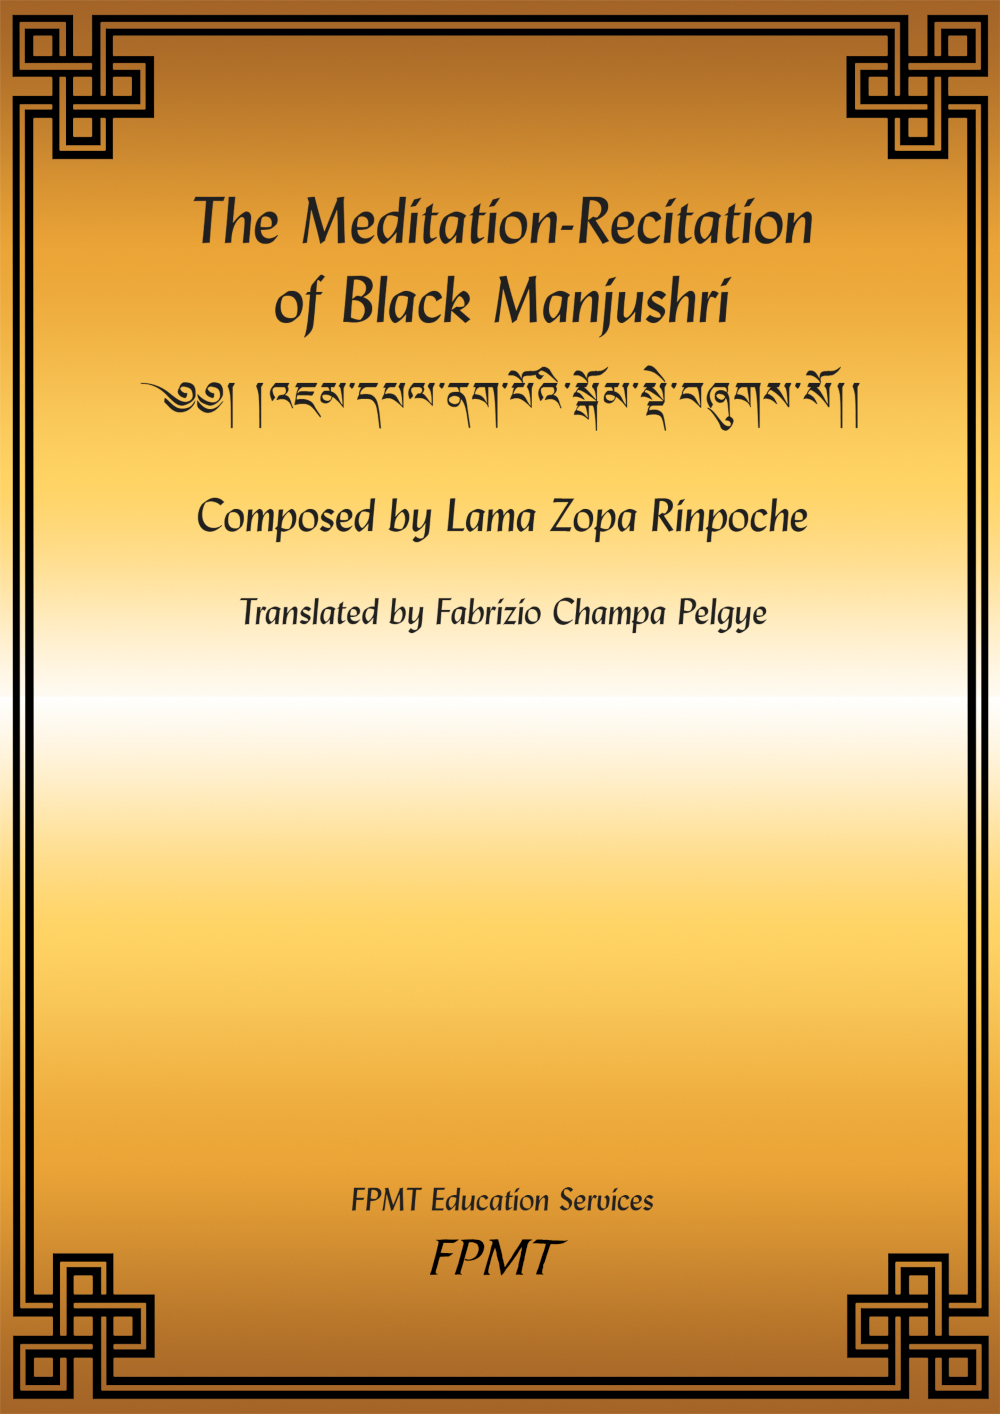 The Meditation-Recitation of Black Manjushri